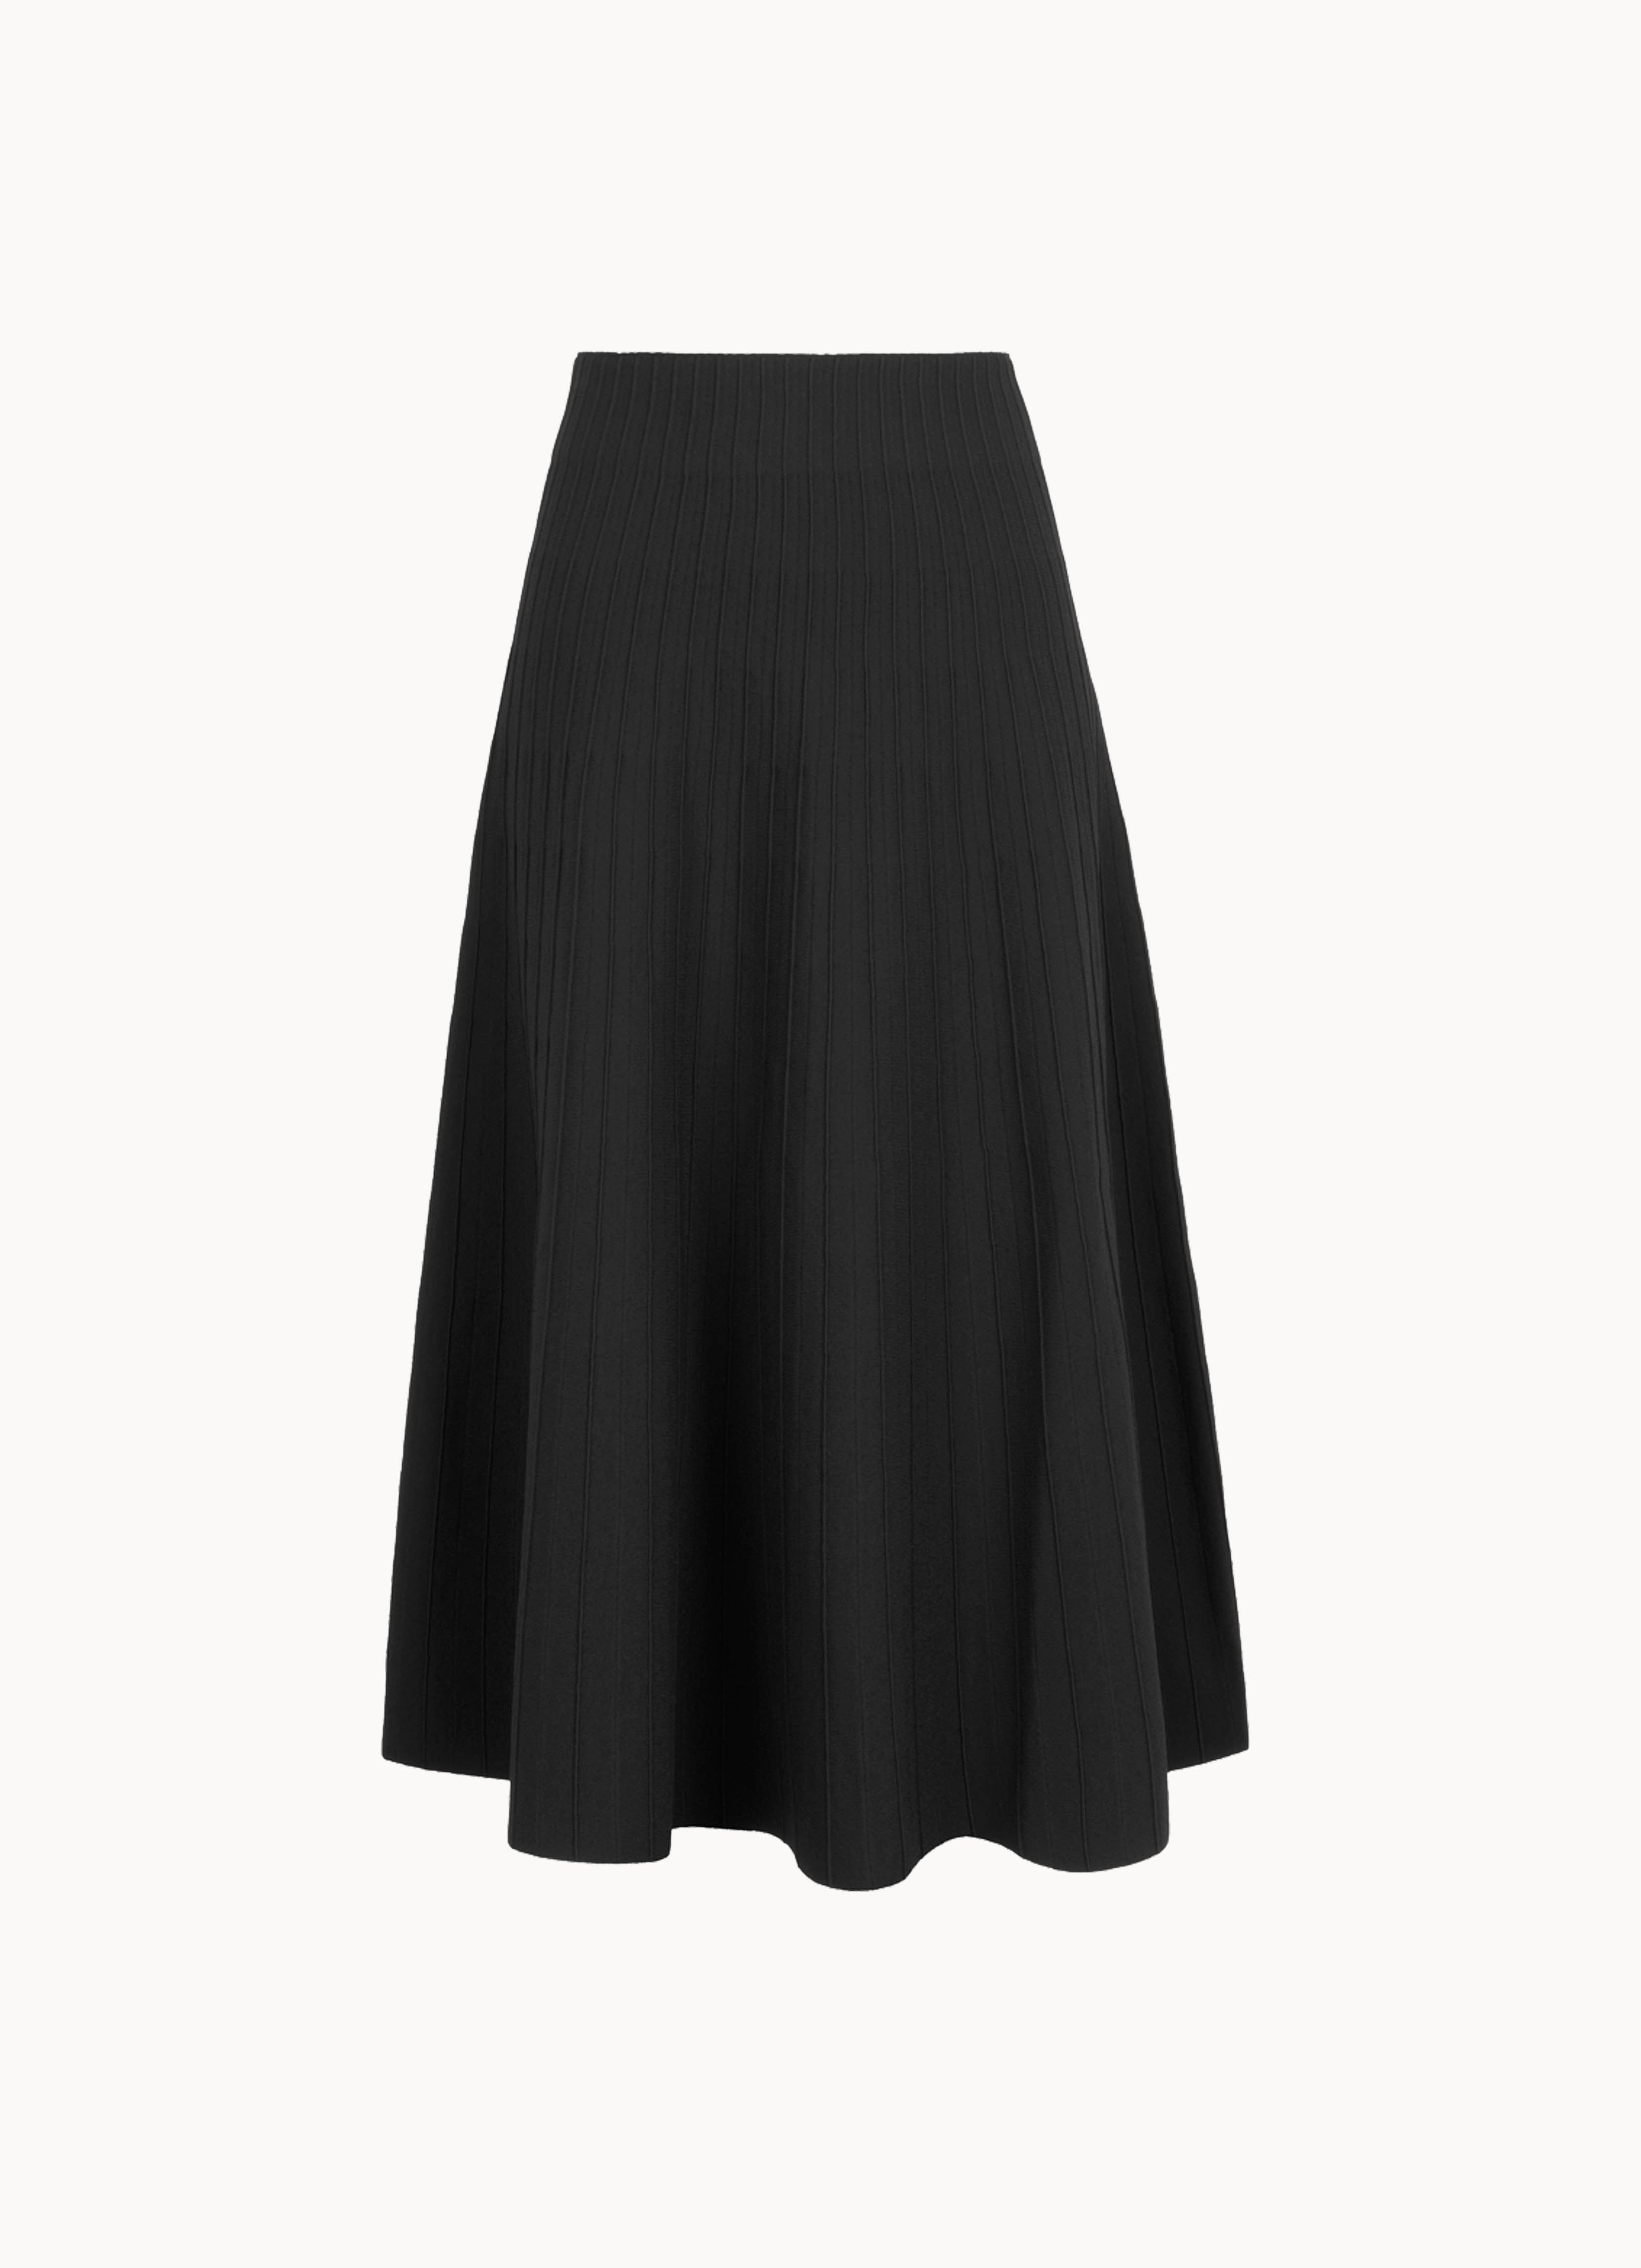 High-Waist Viscose-Knit Knee-Length Skirt